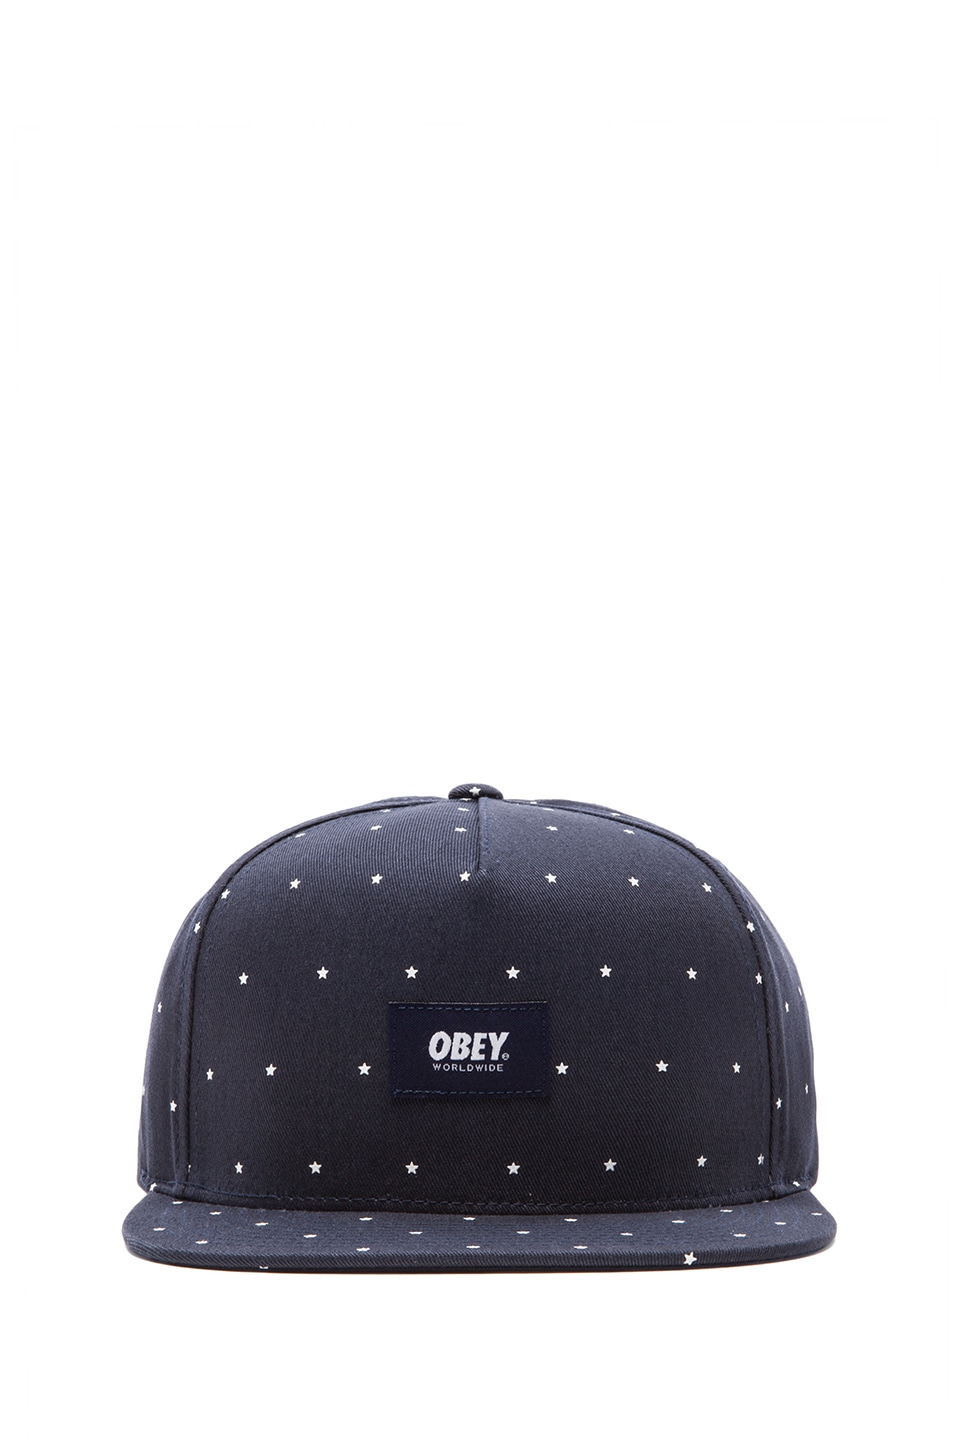 Obey Franklin Snapback in Navy